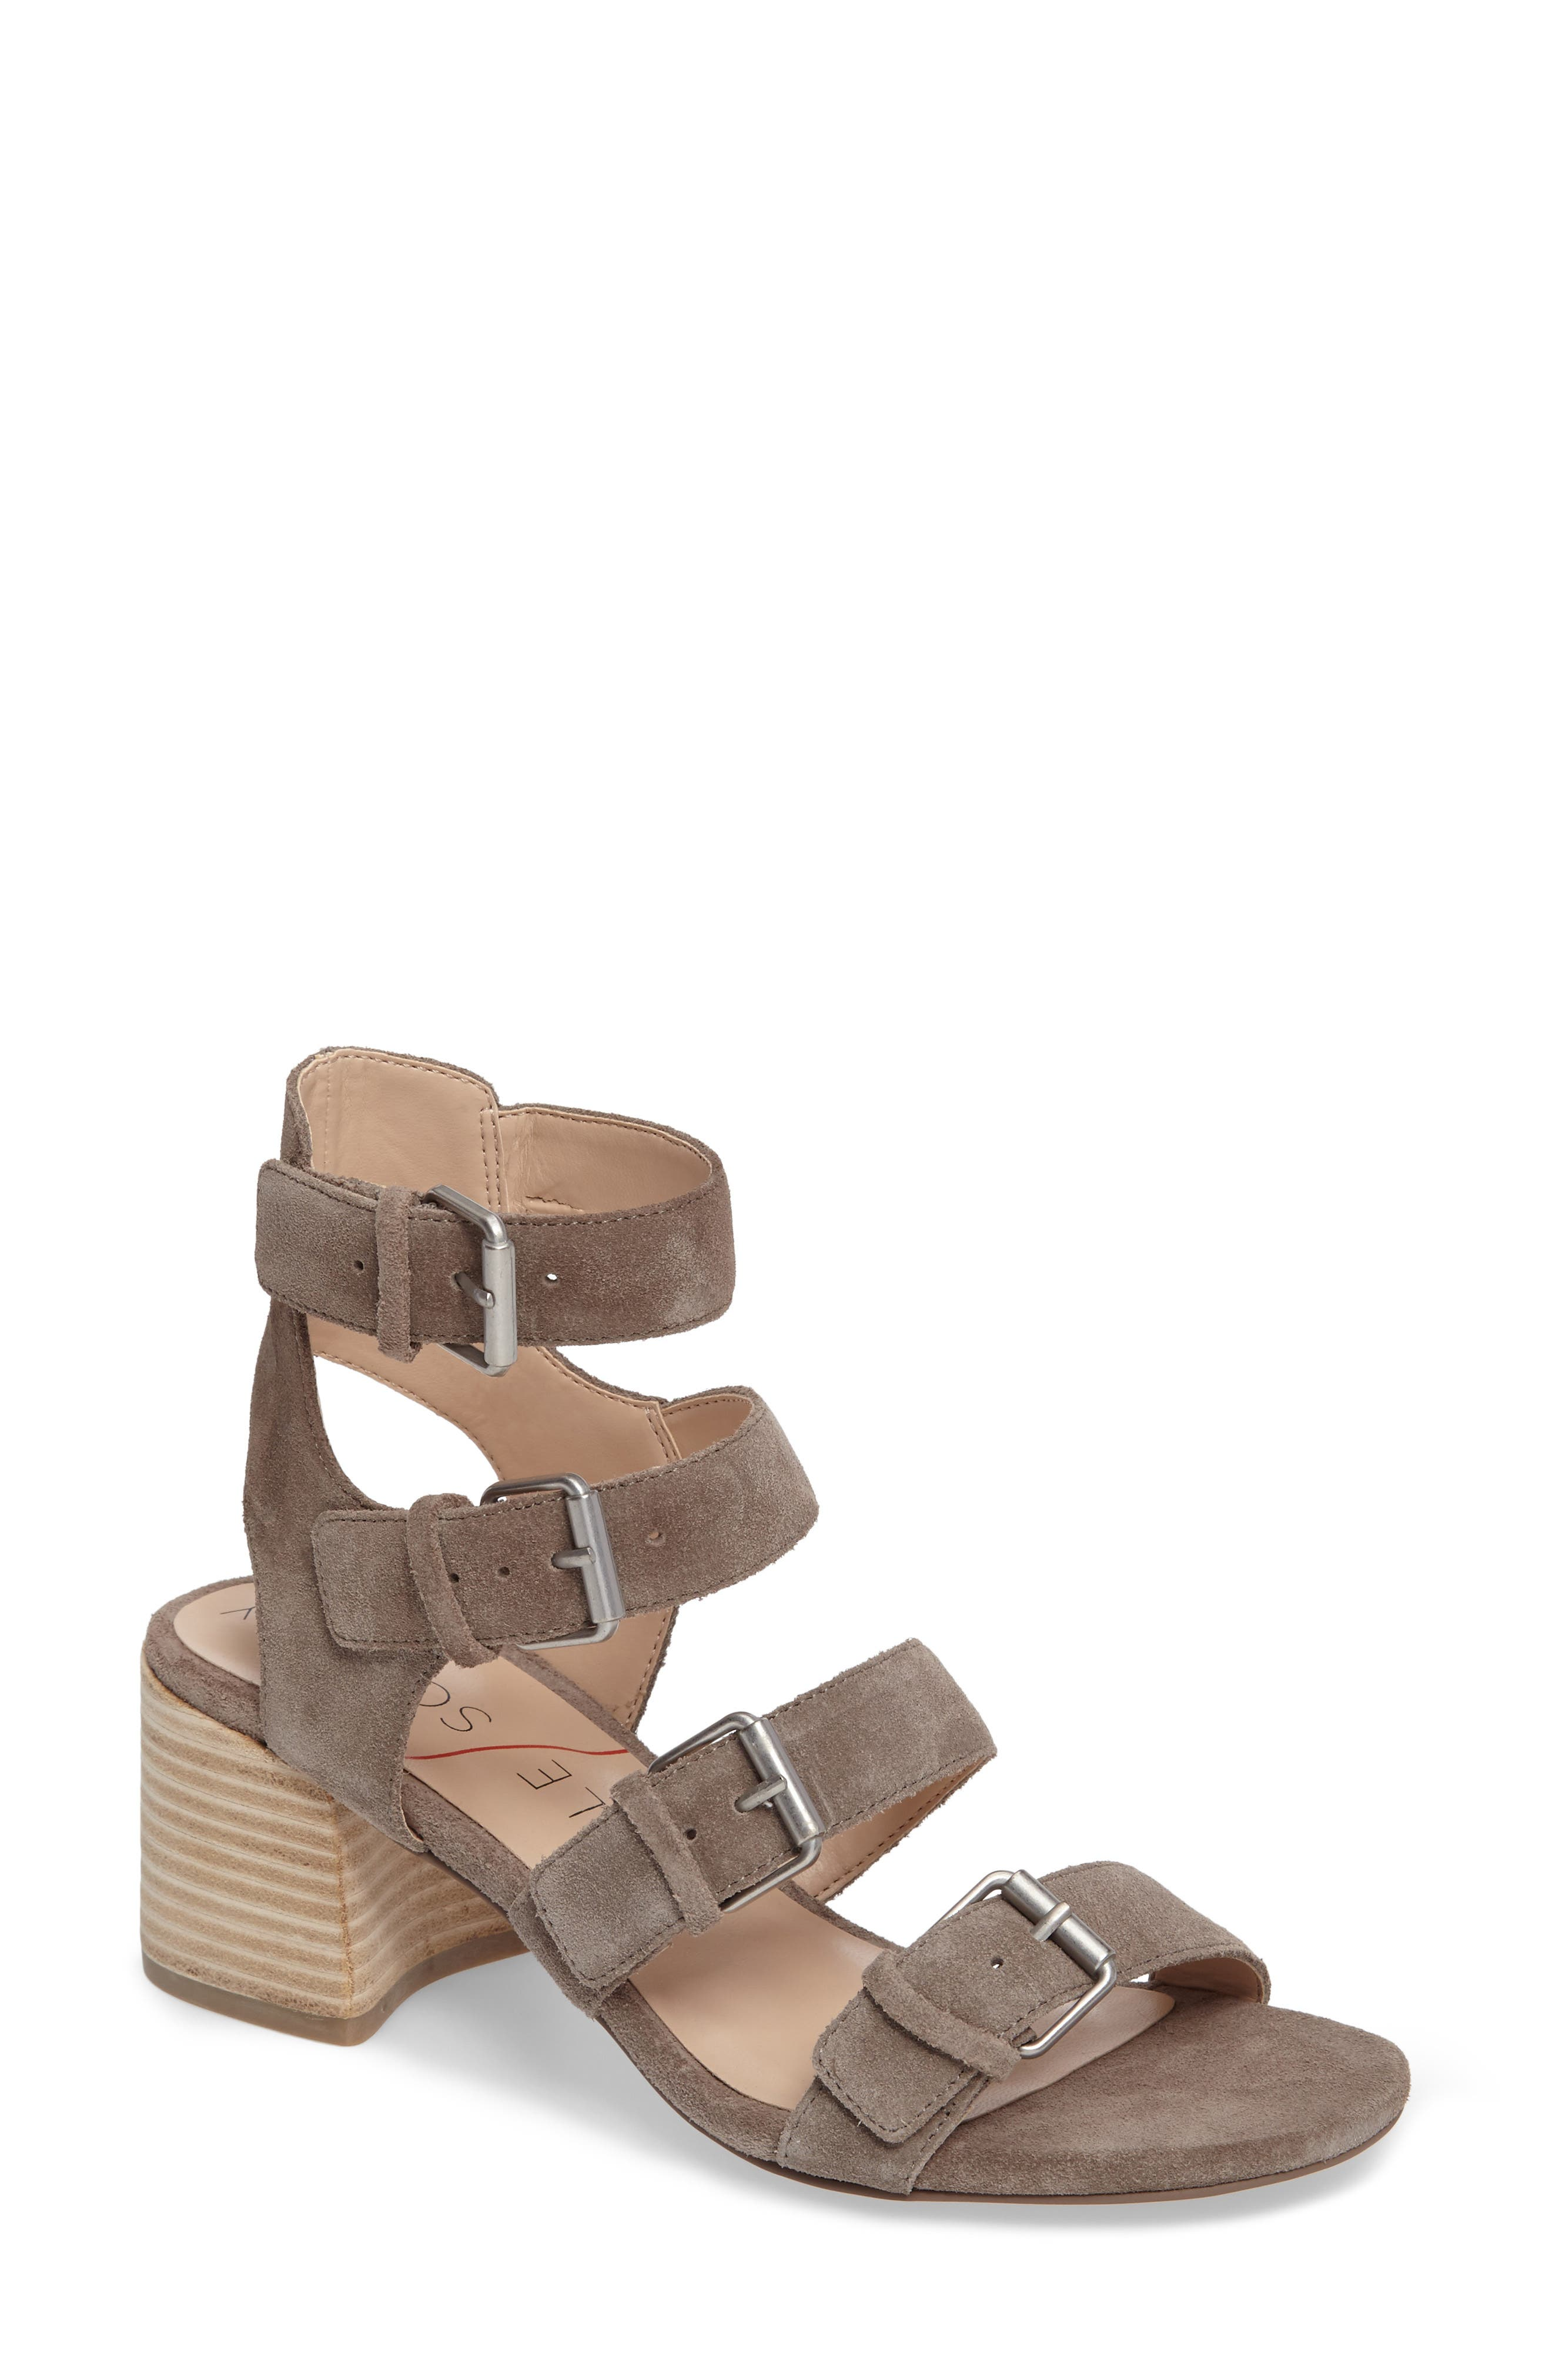 Alternate Image 1 Selected - Sole Society Culver Block Heel Sandal (Women)